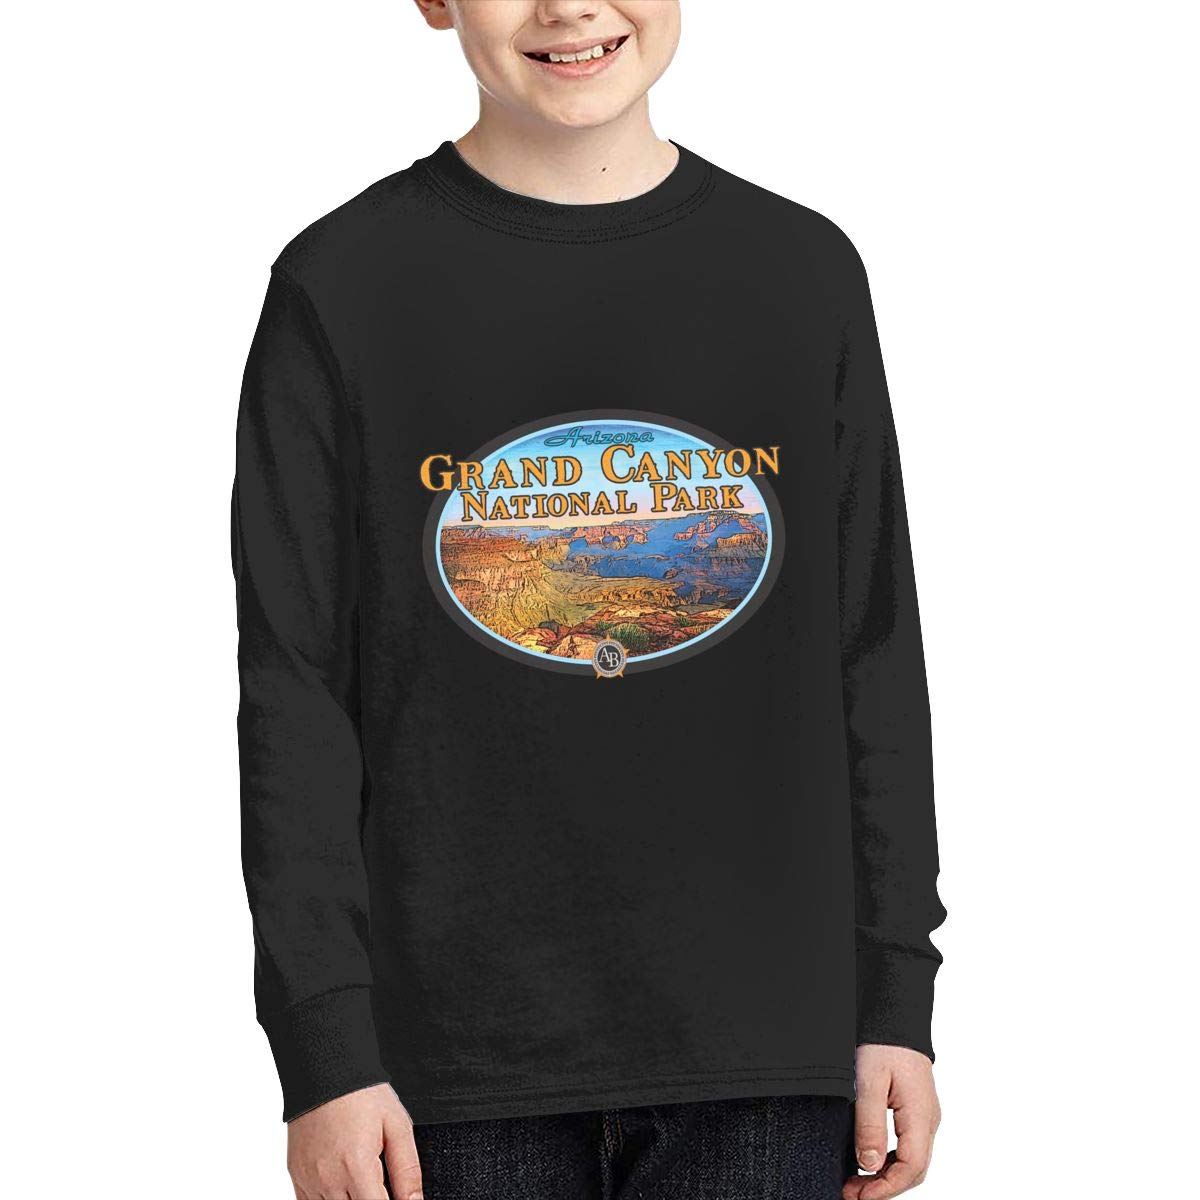 Grand Canyon National Park Logo Teen Boy Girl Sport Pullover Sweatshirt Funny Shirt